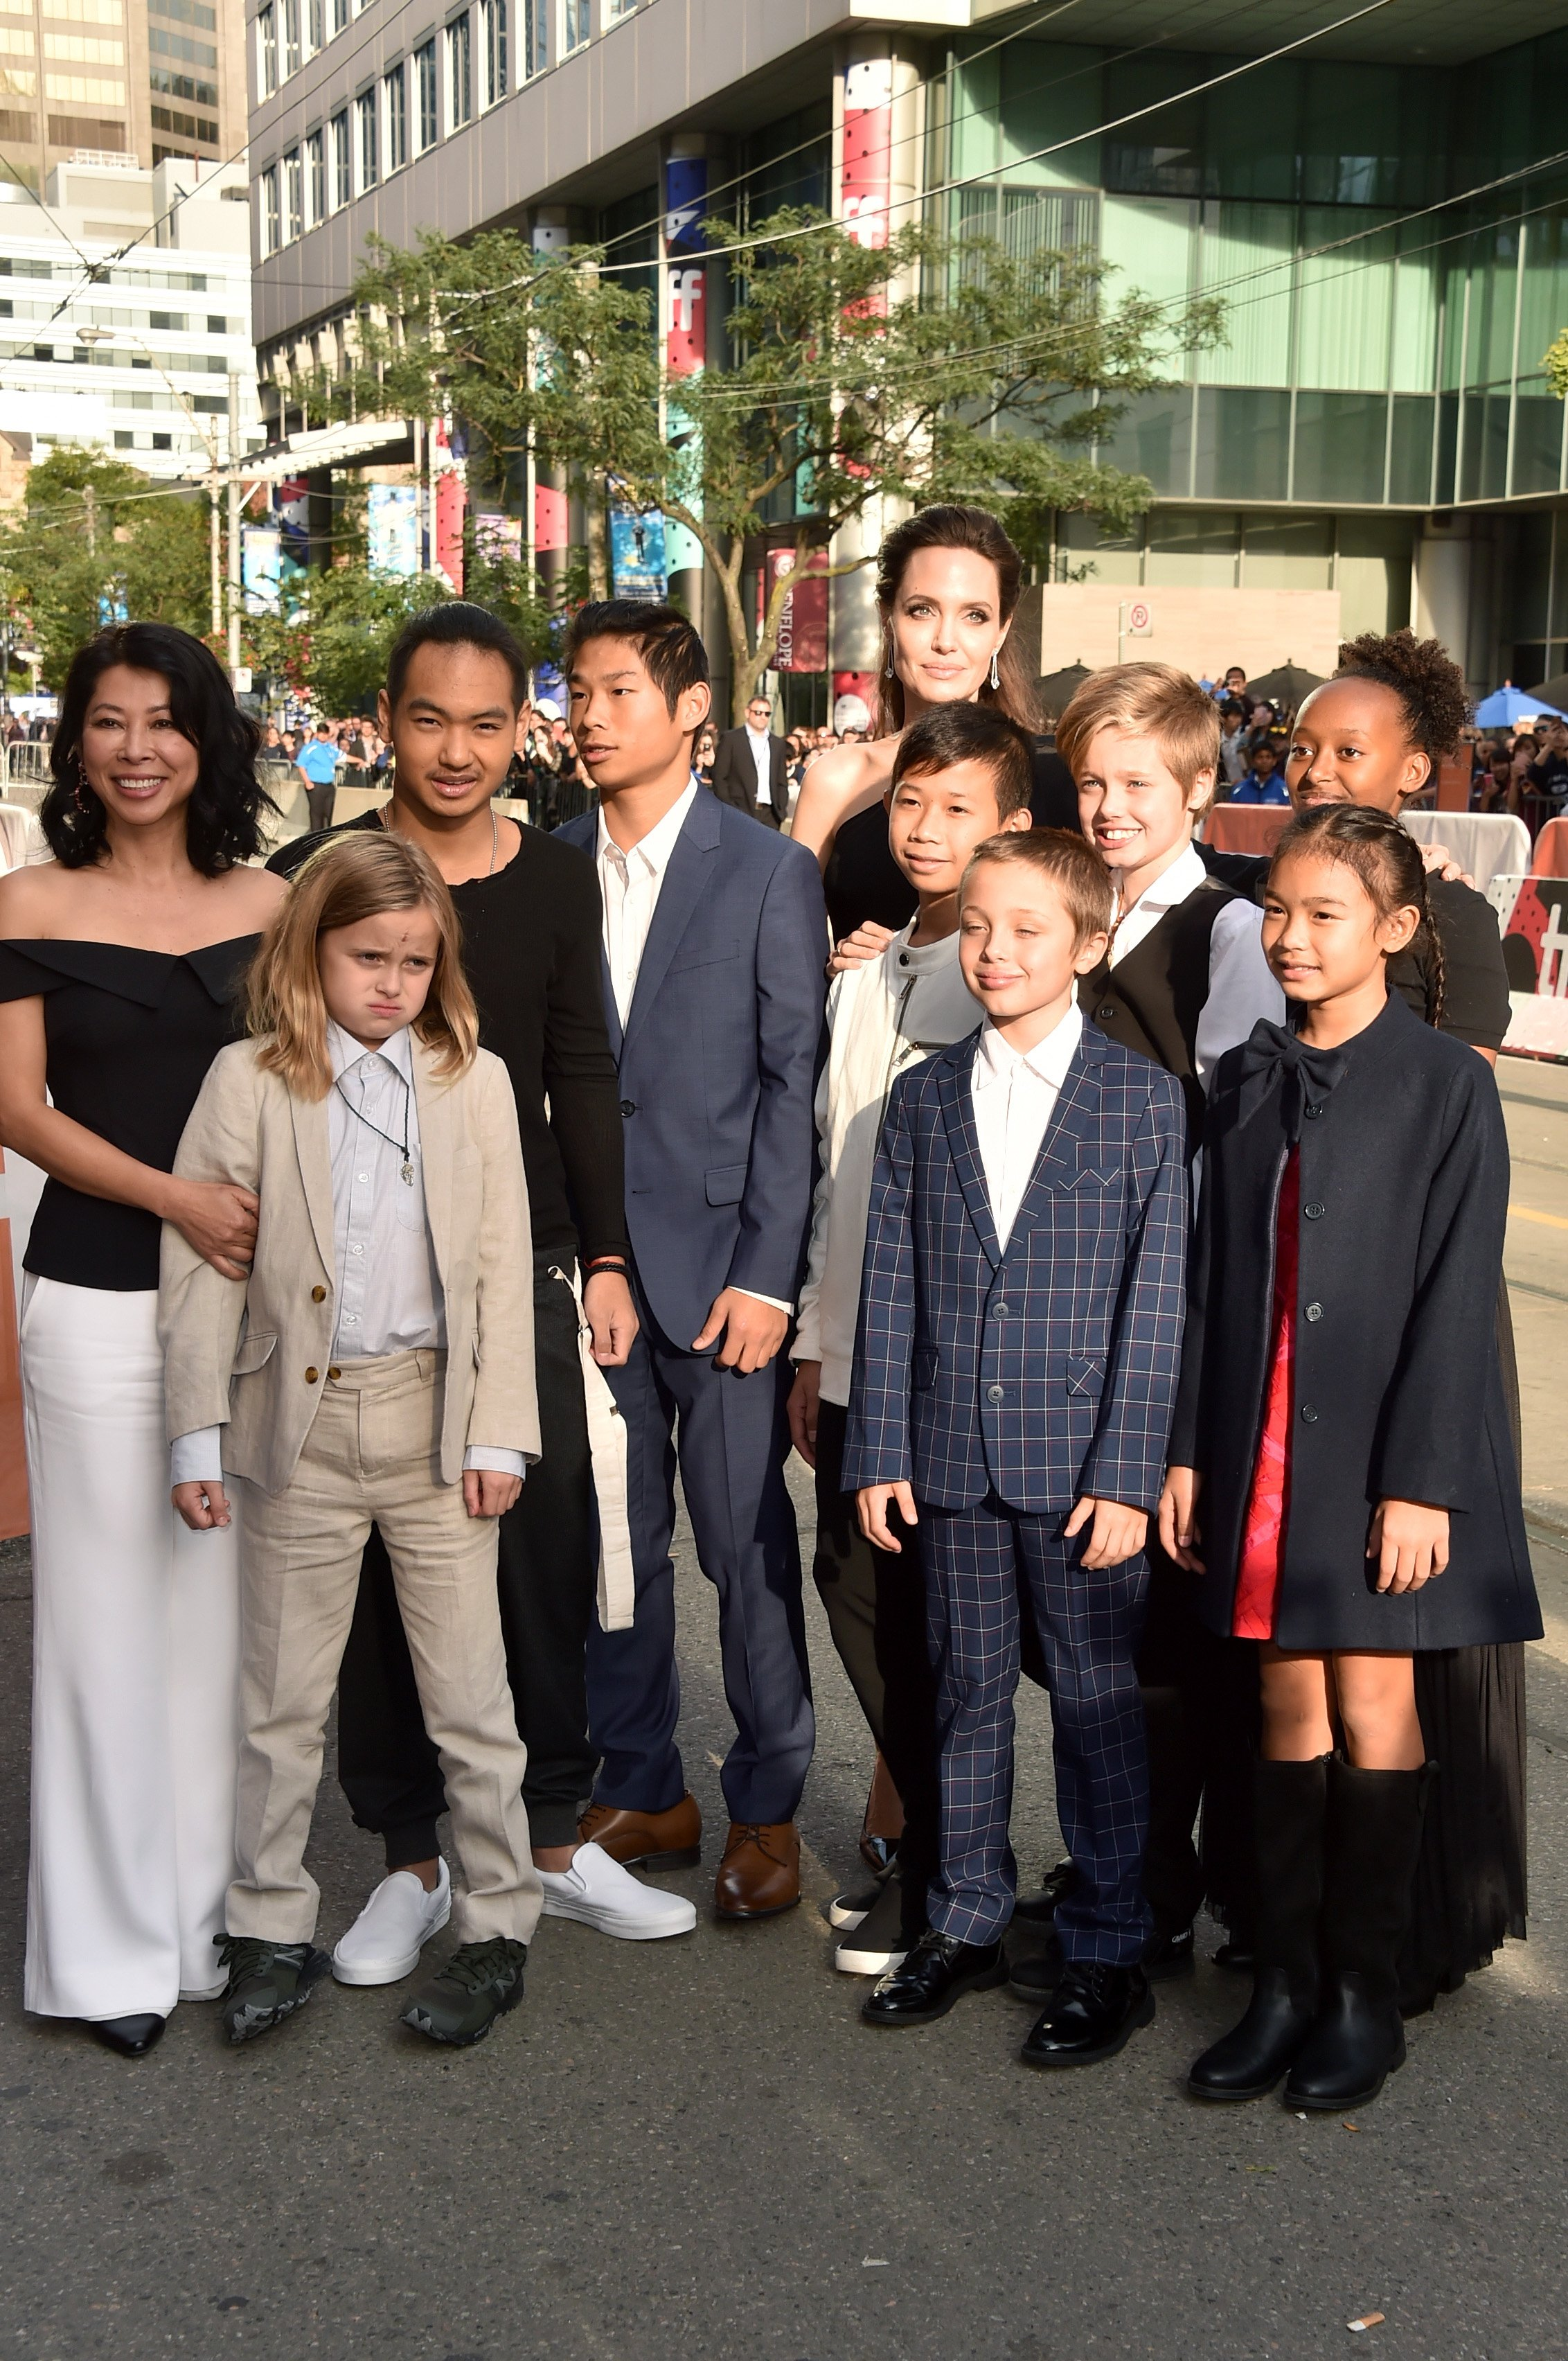 Angelina Jolie and her children at the 2017 Toronto International Film Festival in Toronto, Canada   Source: Getty Images